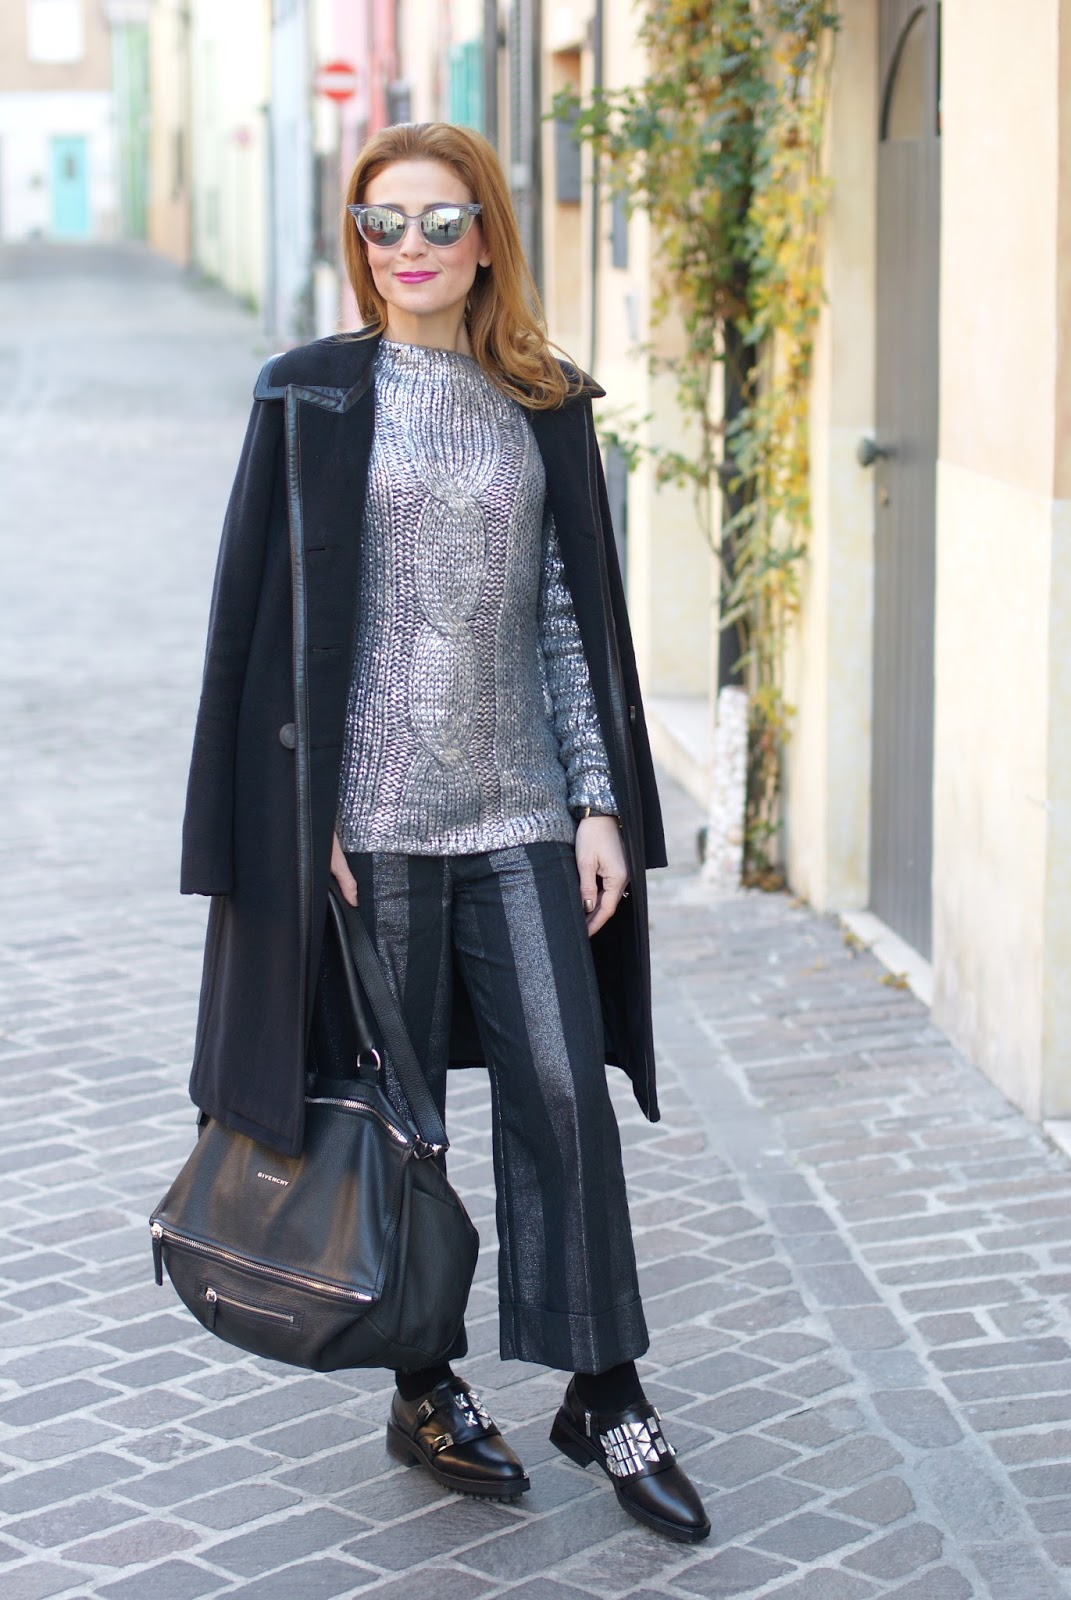 How to spice up a black outfit adding silver metallic on Fashion and Cookies fashion blog, fashion blogger style